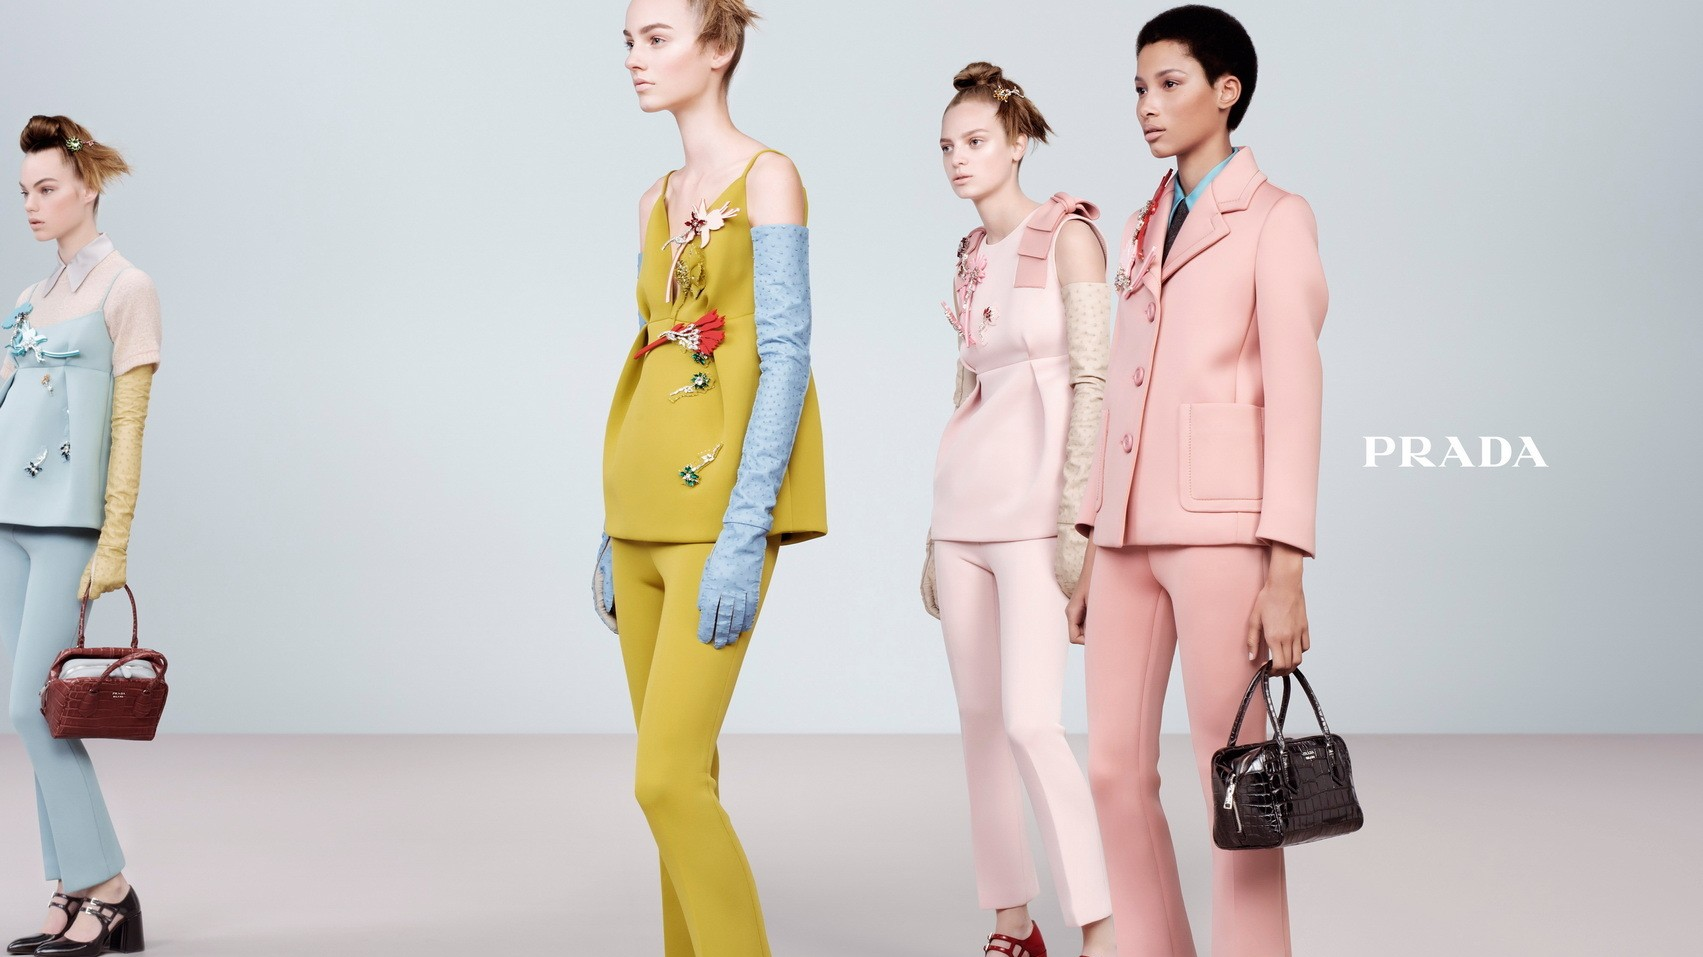 ​sneak a peek at prada's autumn/winter 15 campaign